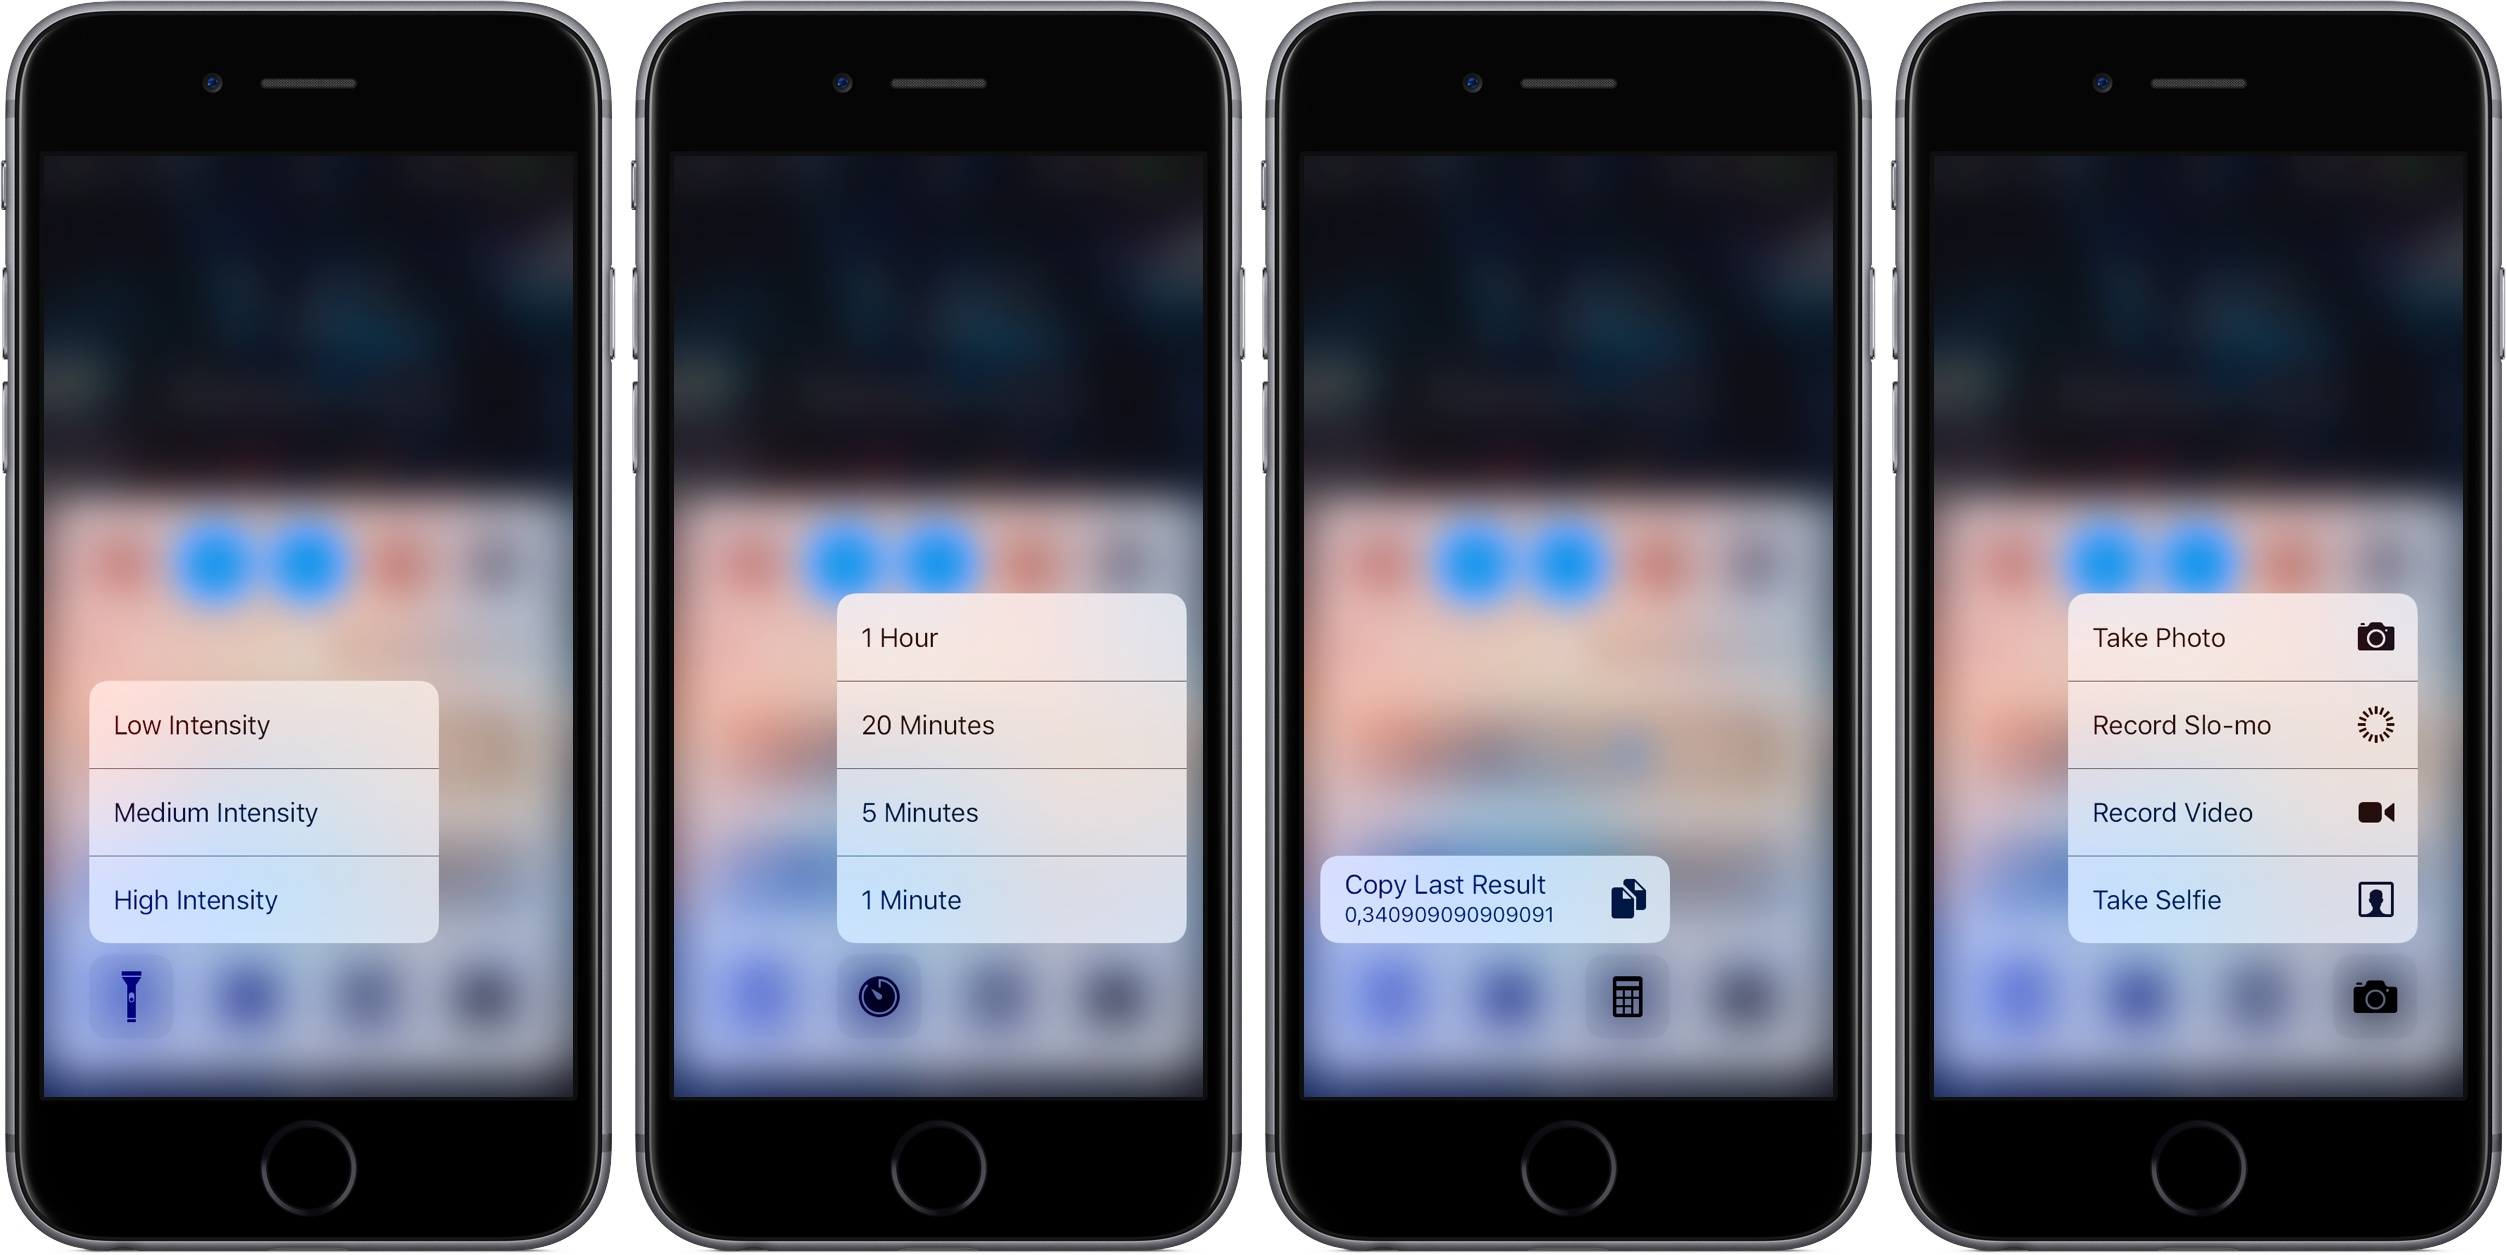 Captura de pantalla 001 de iPhone 10 Control Center 3D Touch para iPhone